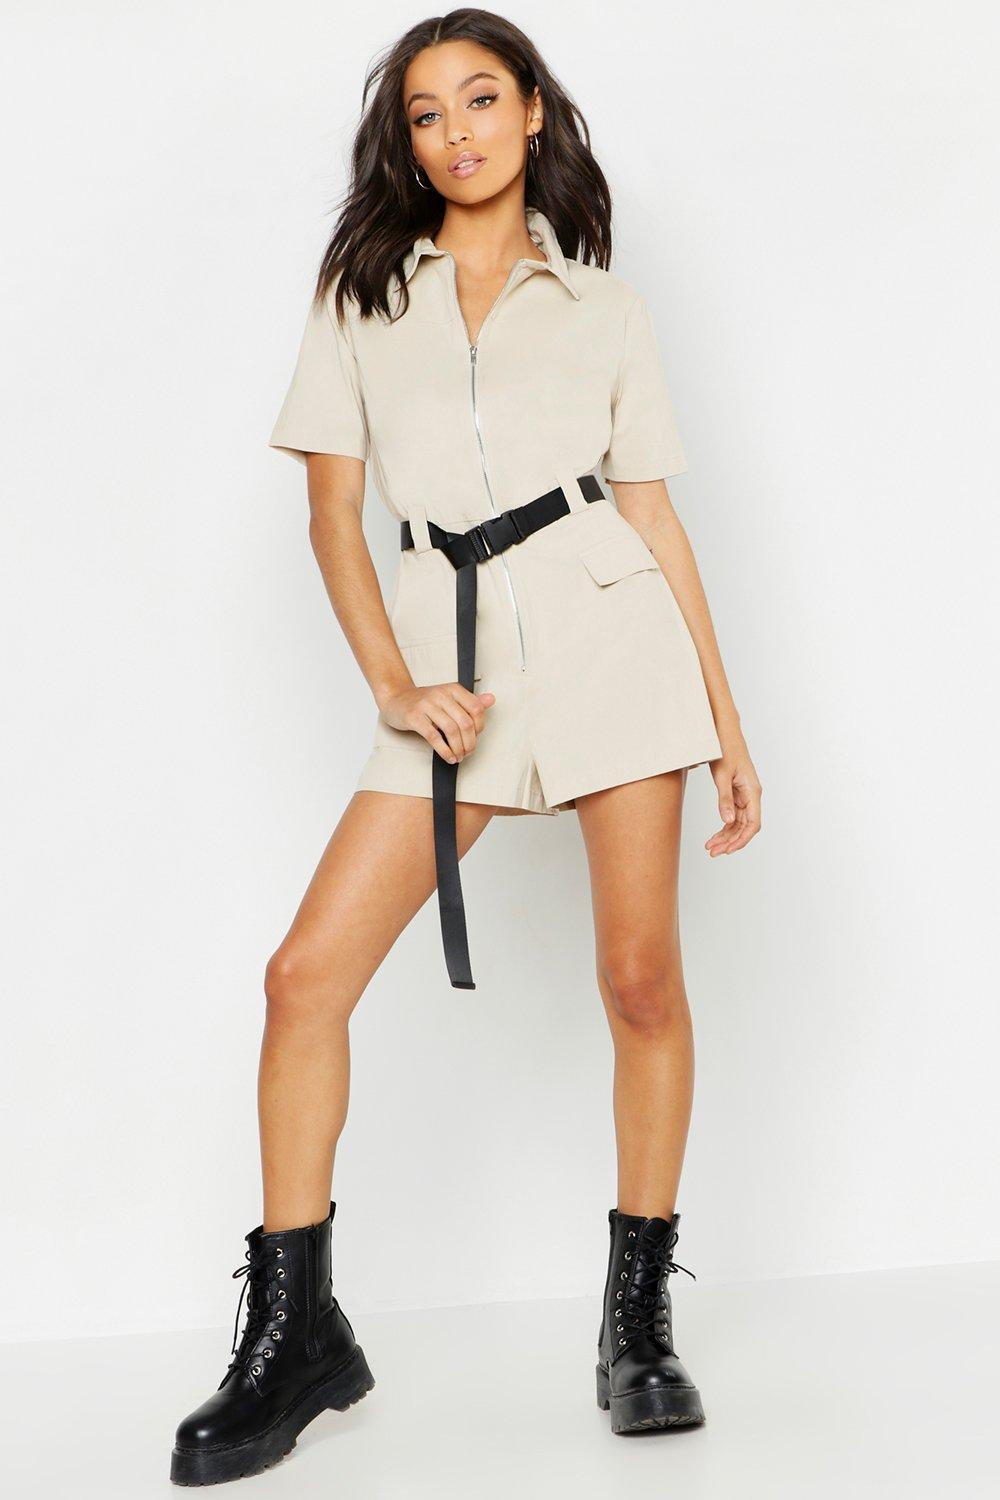 ede2bc618c Boohoo. Women s Utility Safety Buckle Cargo Playsuit